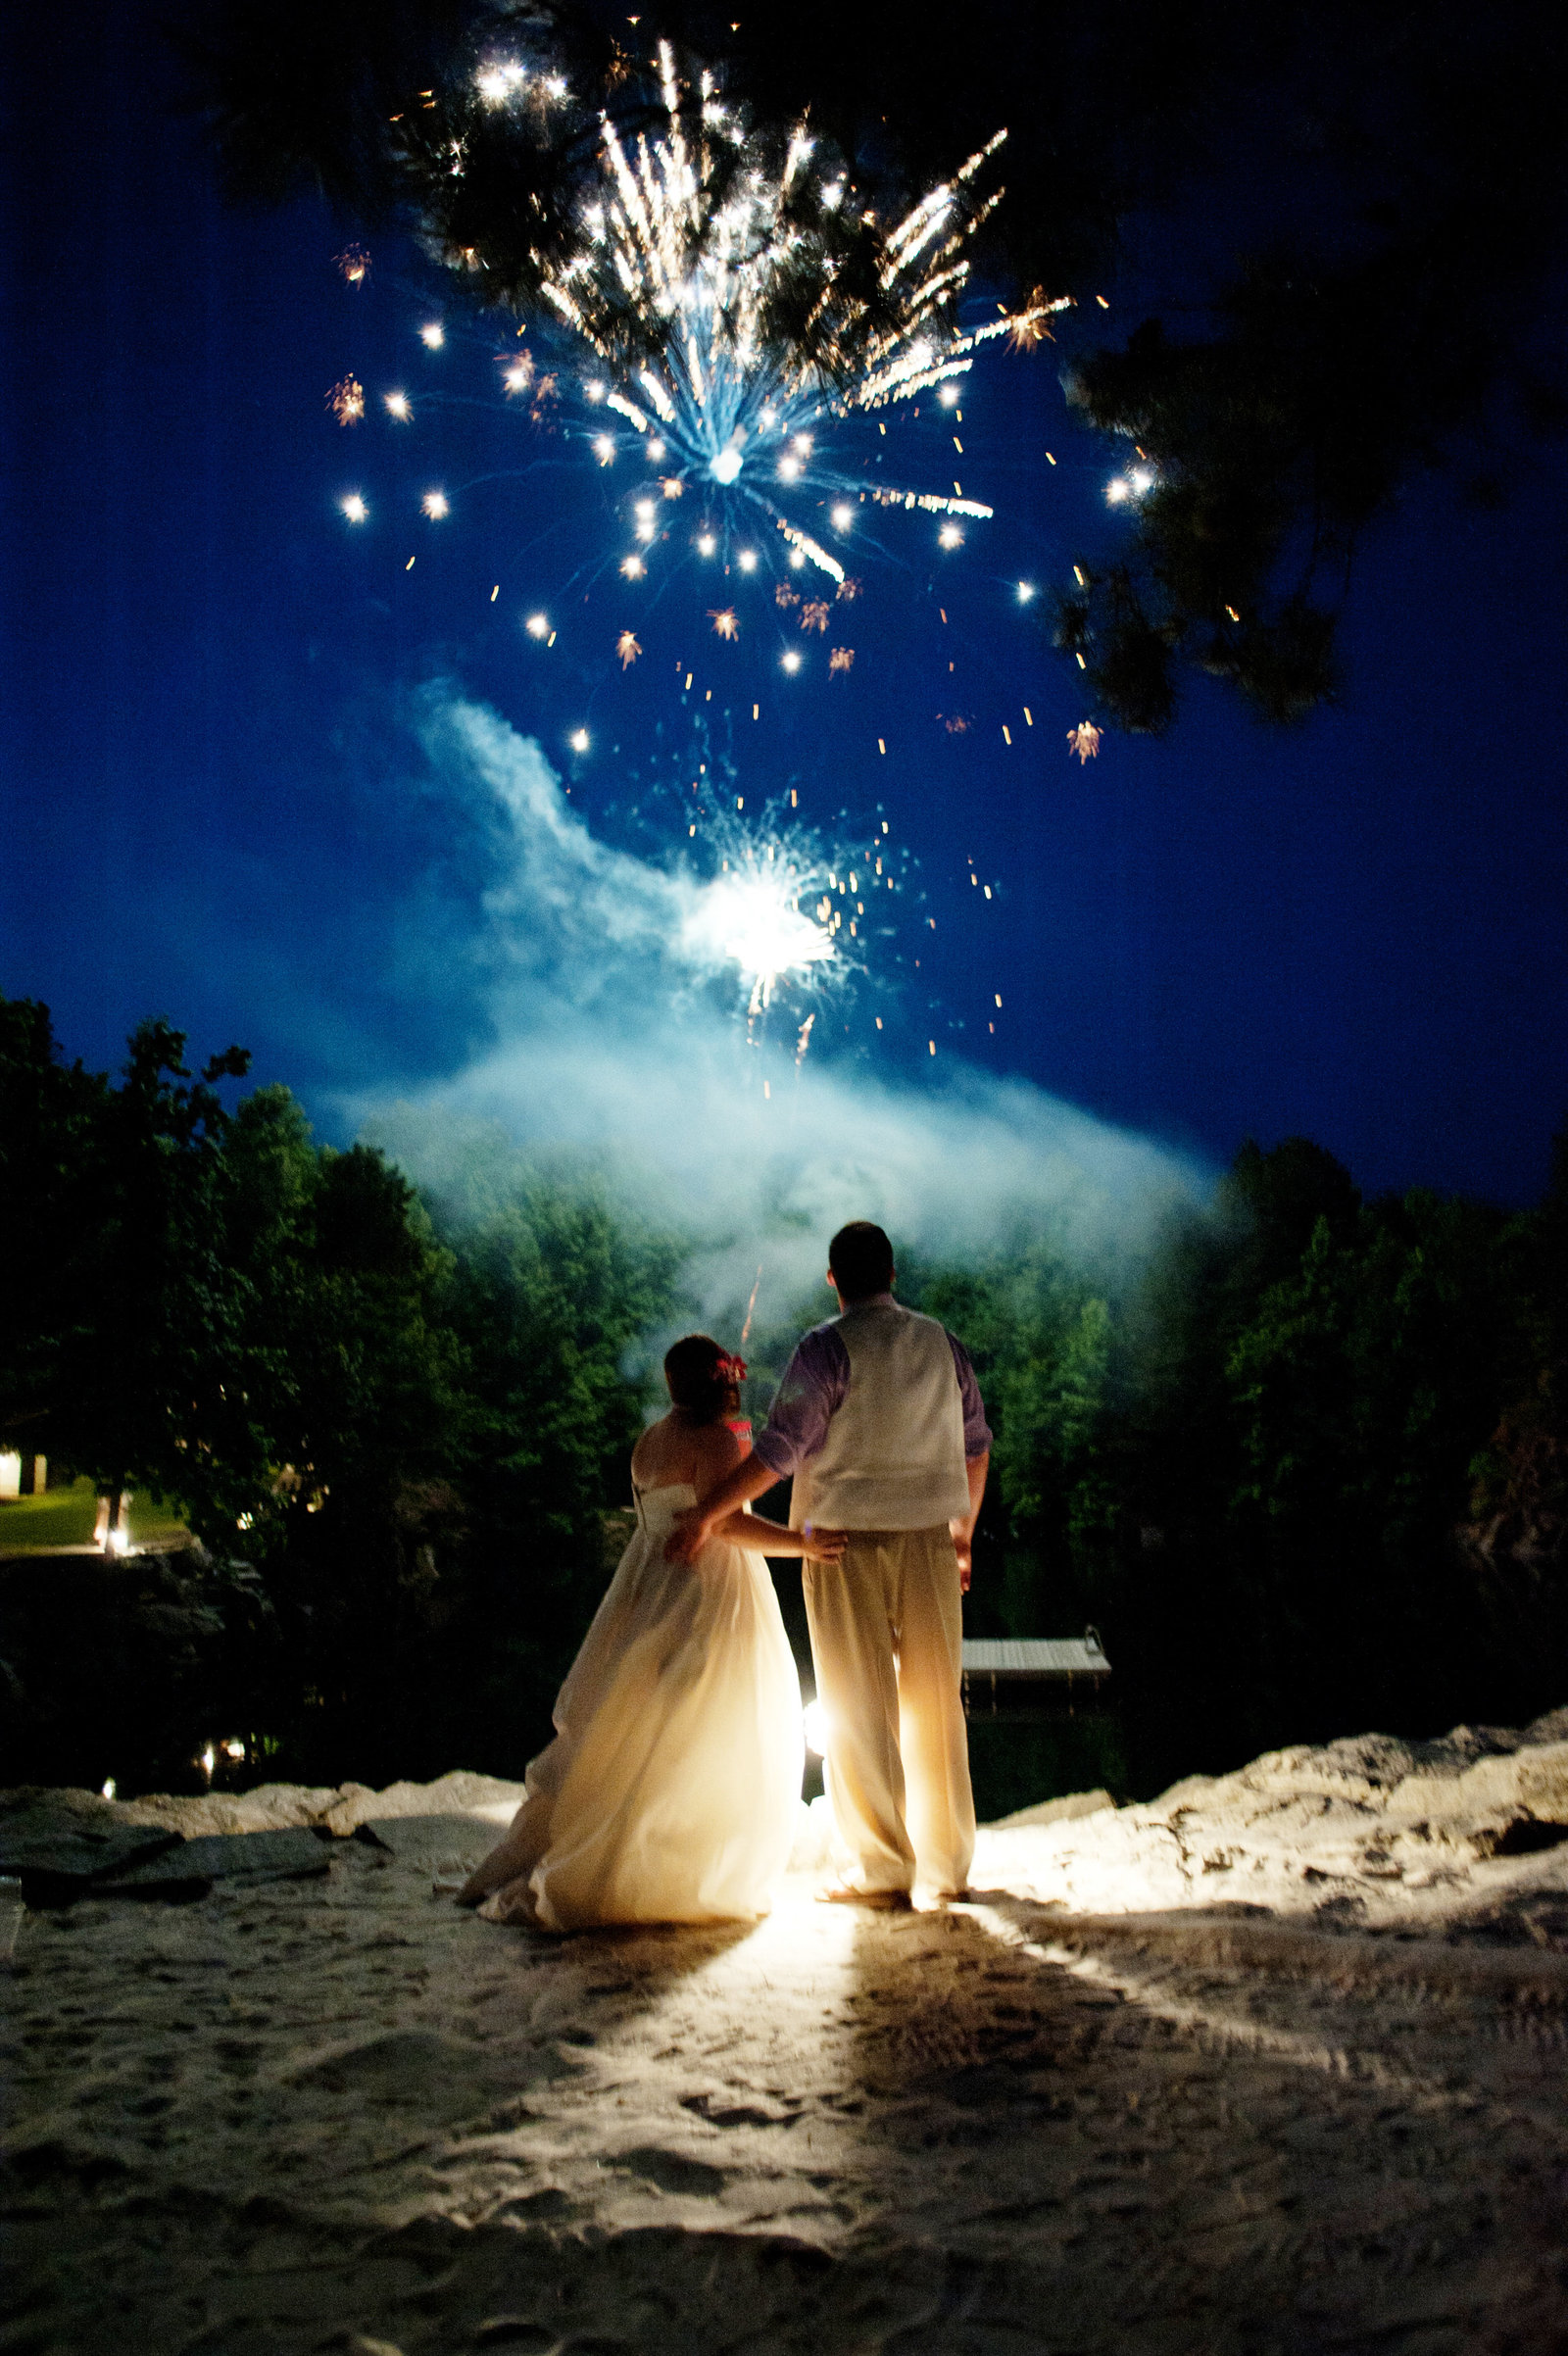 fireworks explode over wedding couple at carrigan farms